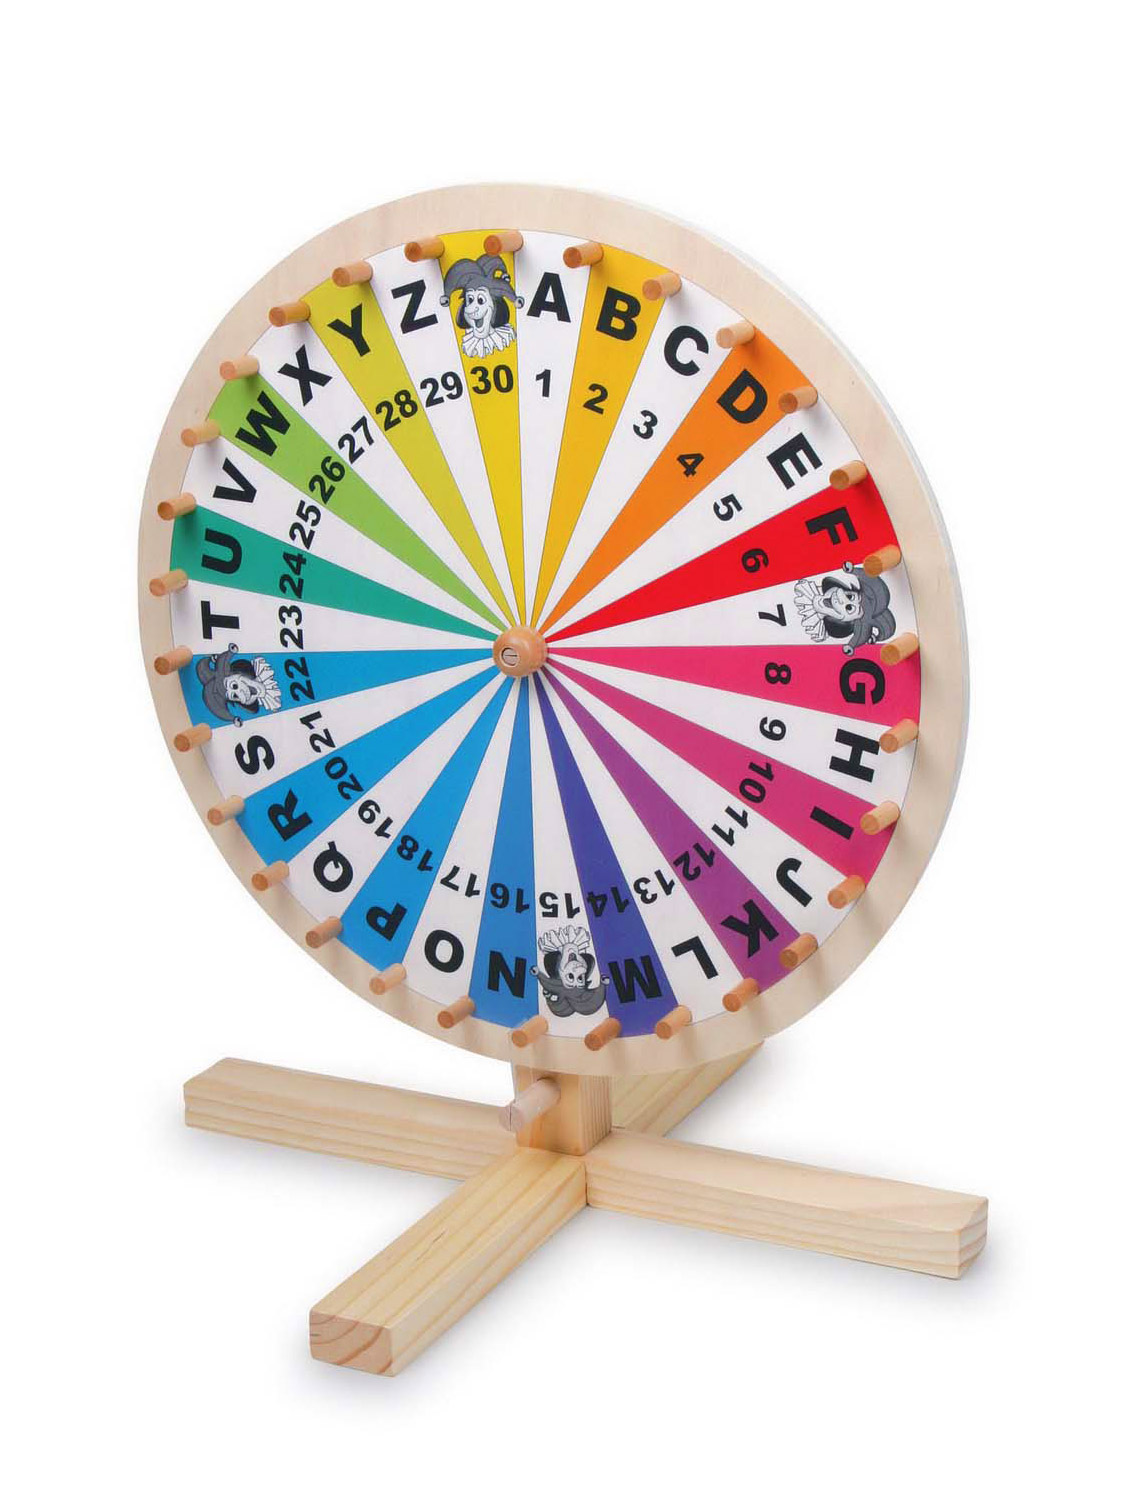 Wooden Wheel Of Fortune Toy Game Lottery Spinning Wheel